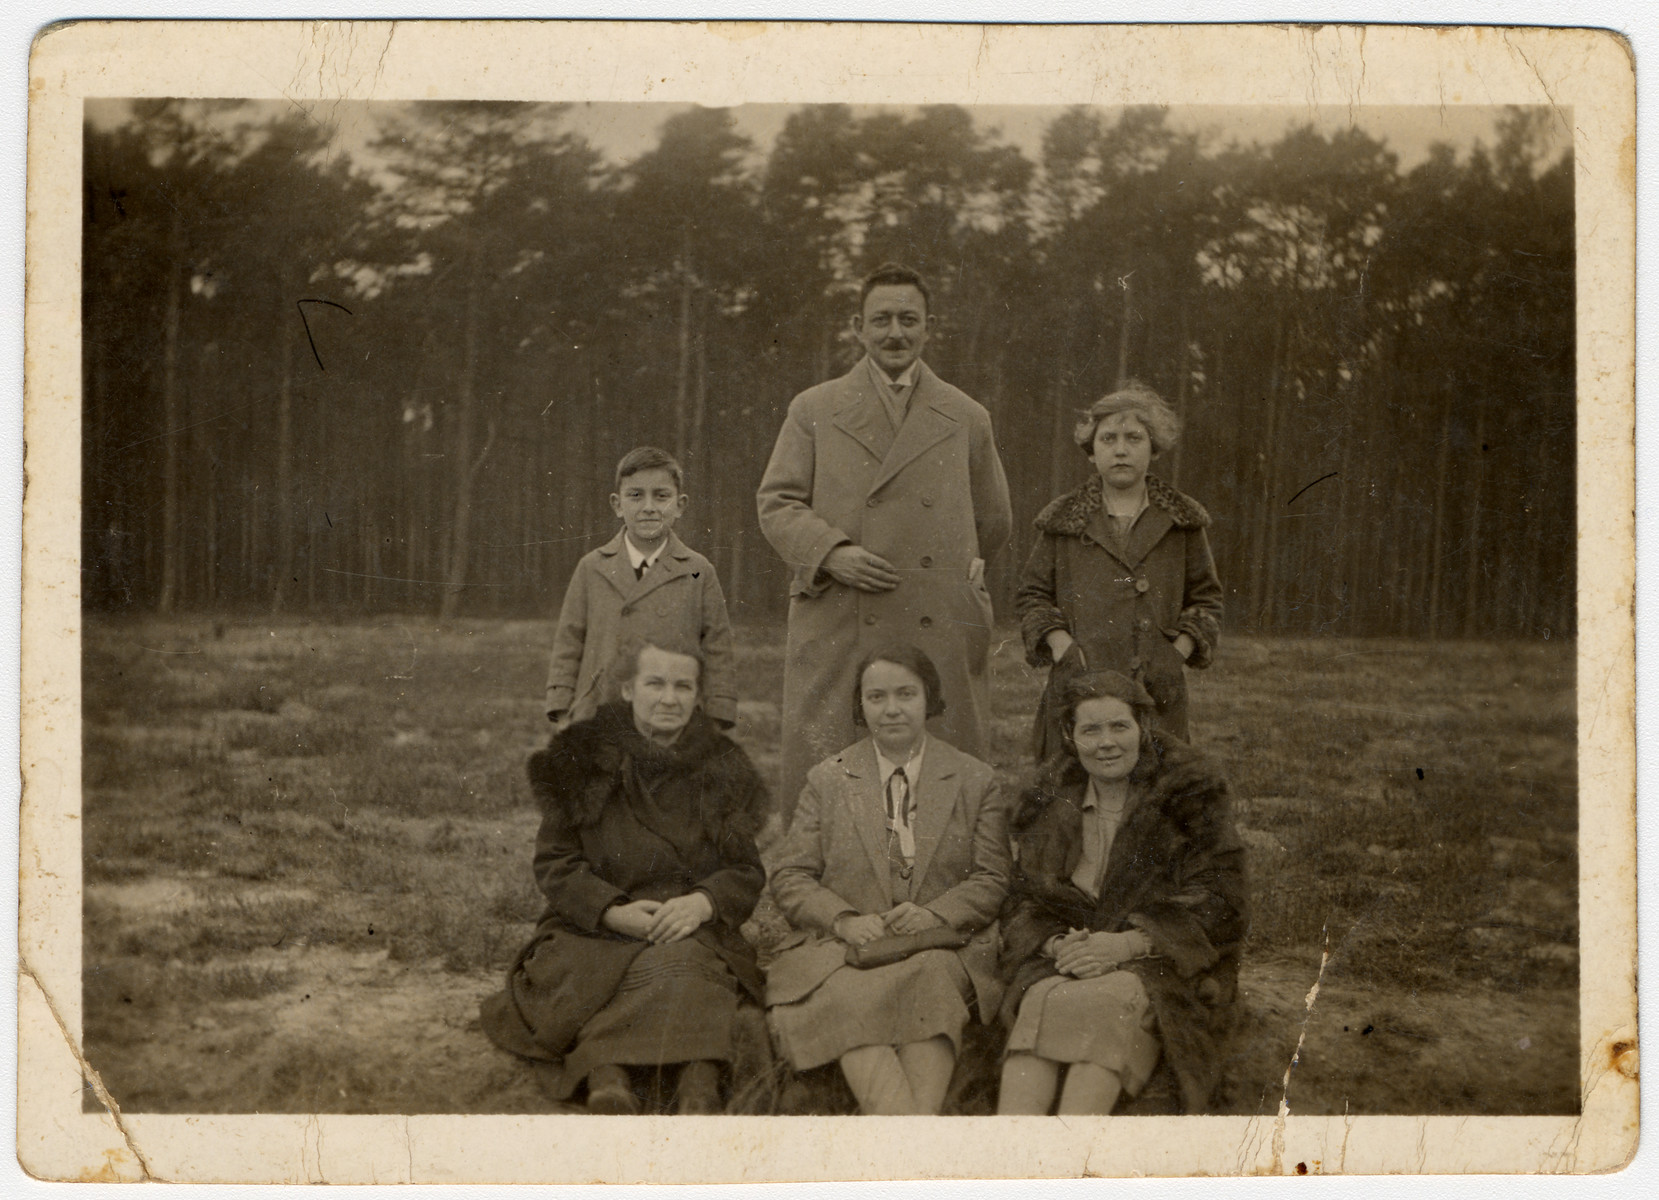 Standing from left to right are Hans, Max, and Ilse Hanauer.  Below them (from left to right) sit Marie Teske, Frieda Hanauer, and an unknown woman.  The family is posing in front of a forest.